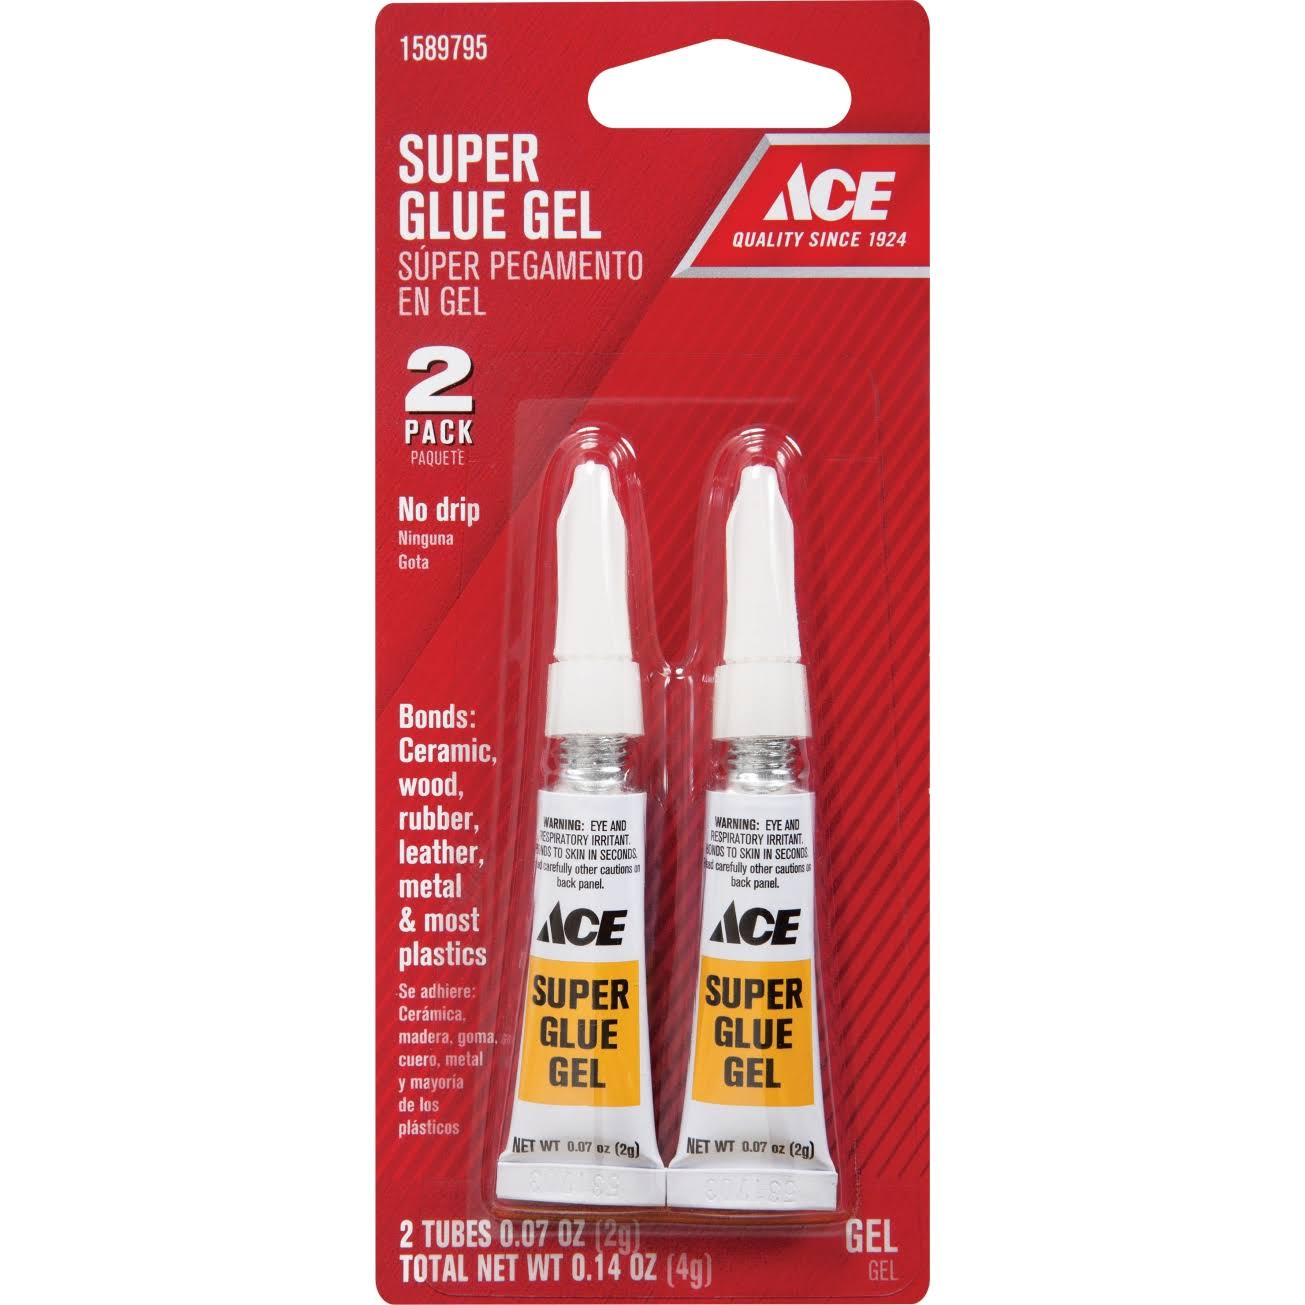 Ace Super Glue Gel - 2 Pack